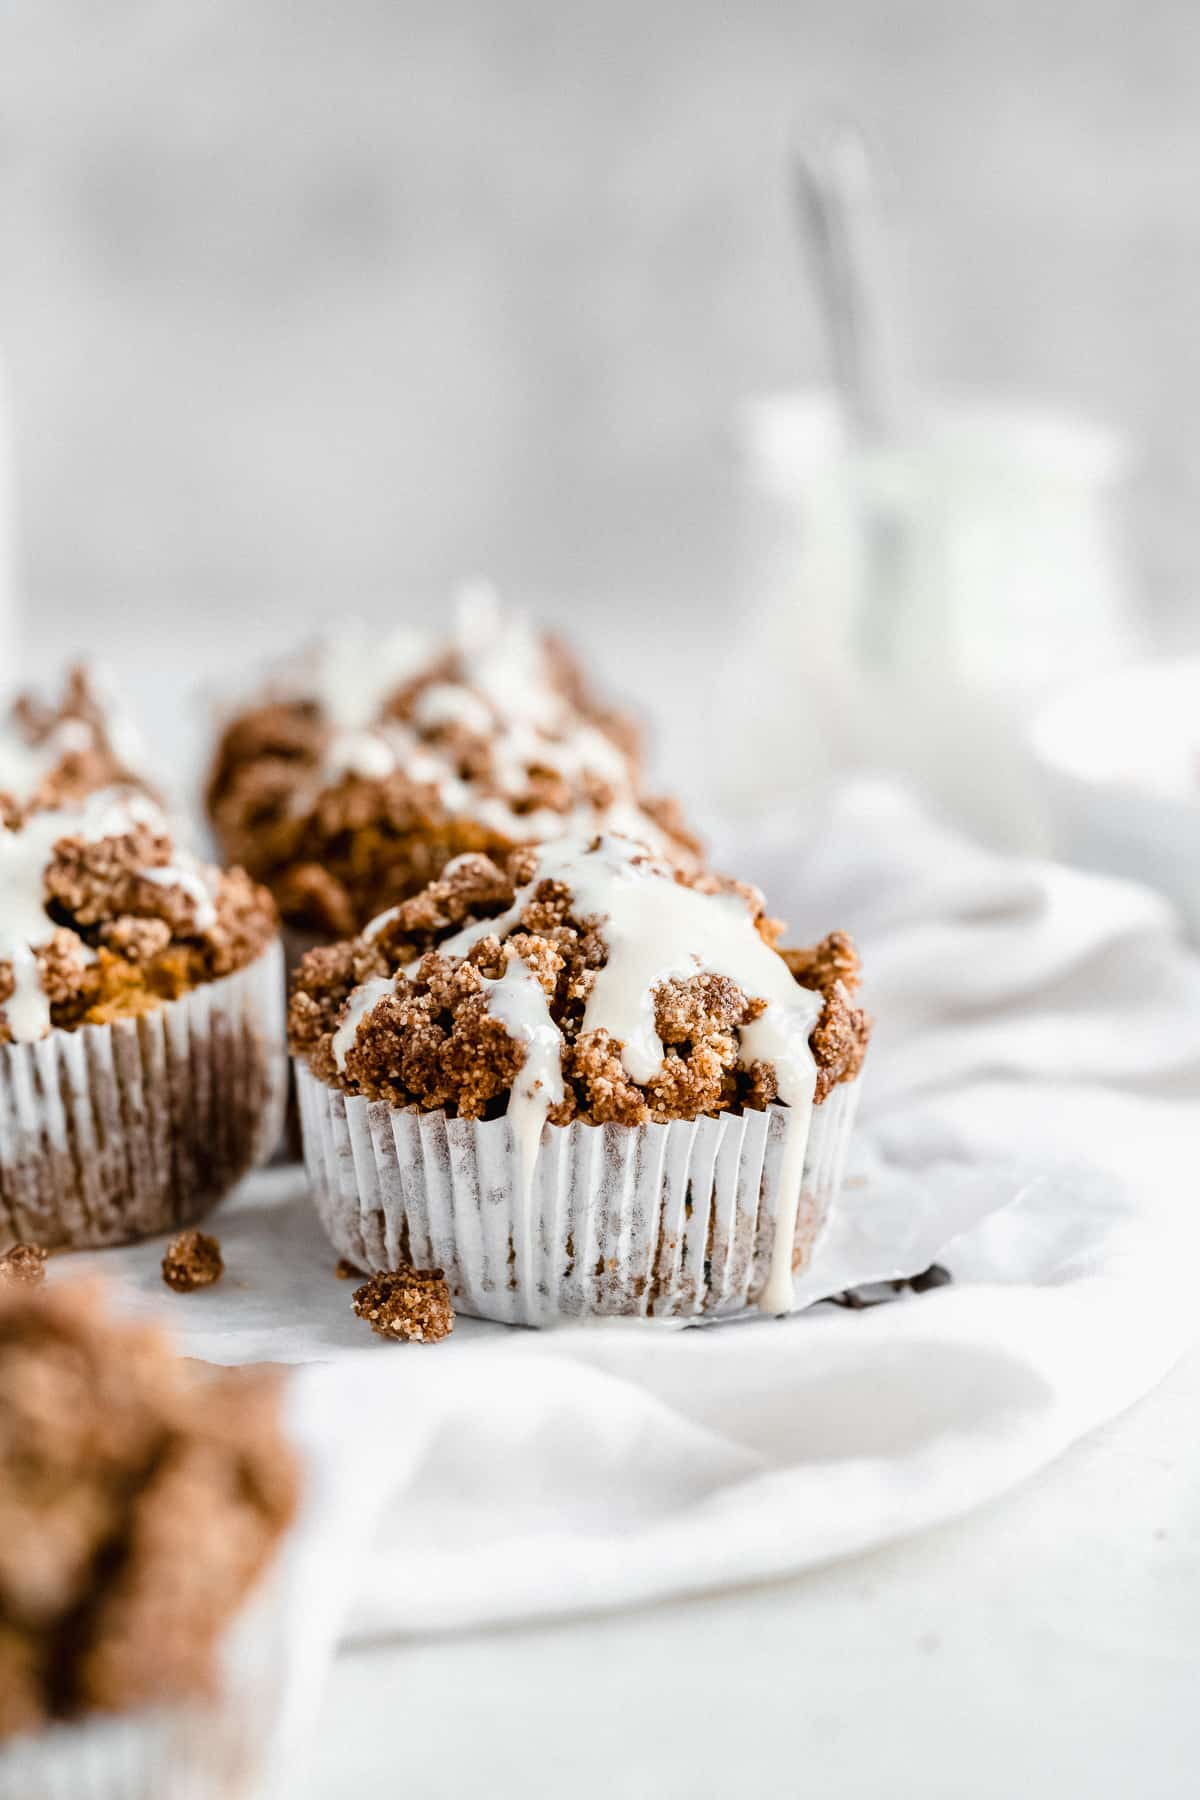 Side view photo of several muffins arranged on white parchment paper ready to be enjoyed.